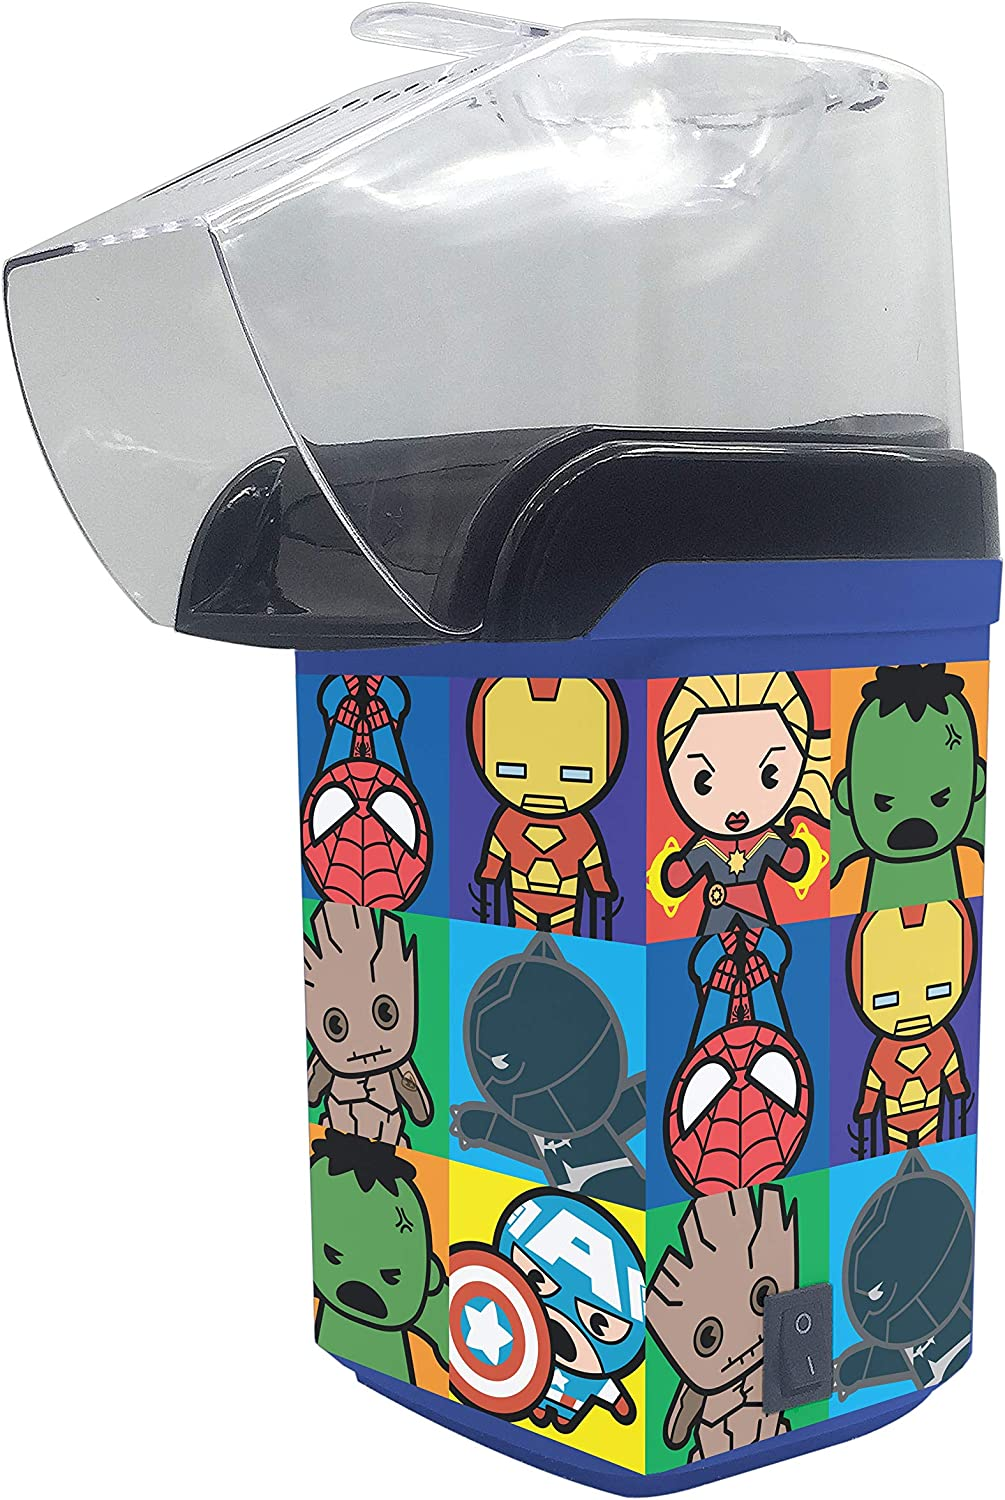 Marvel Kawaii Popcorn Maker- Avengers Assemble Kitchen Appliance